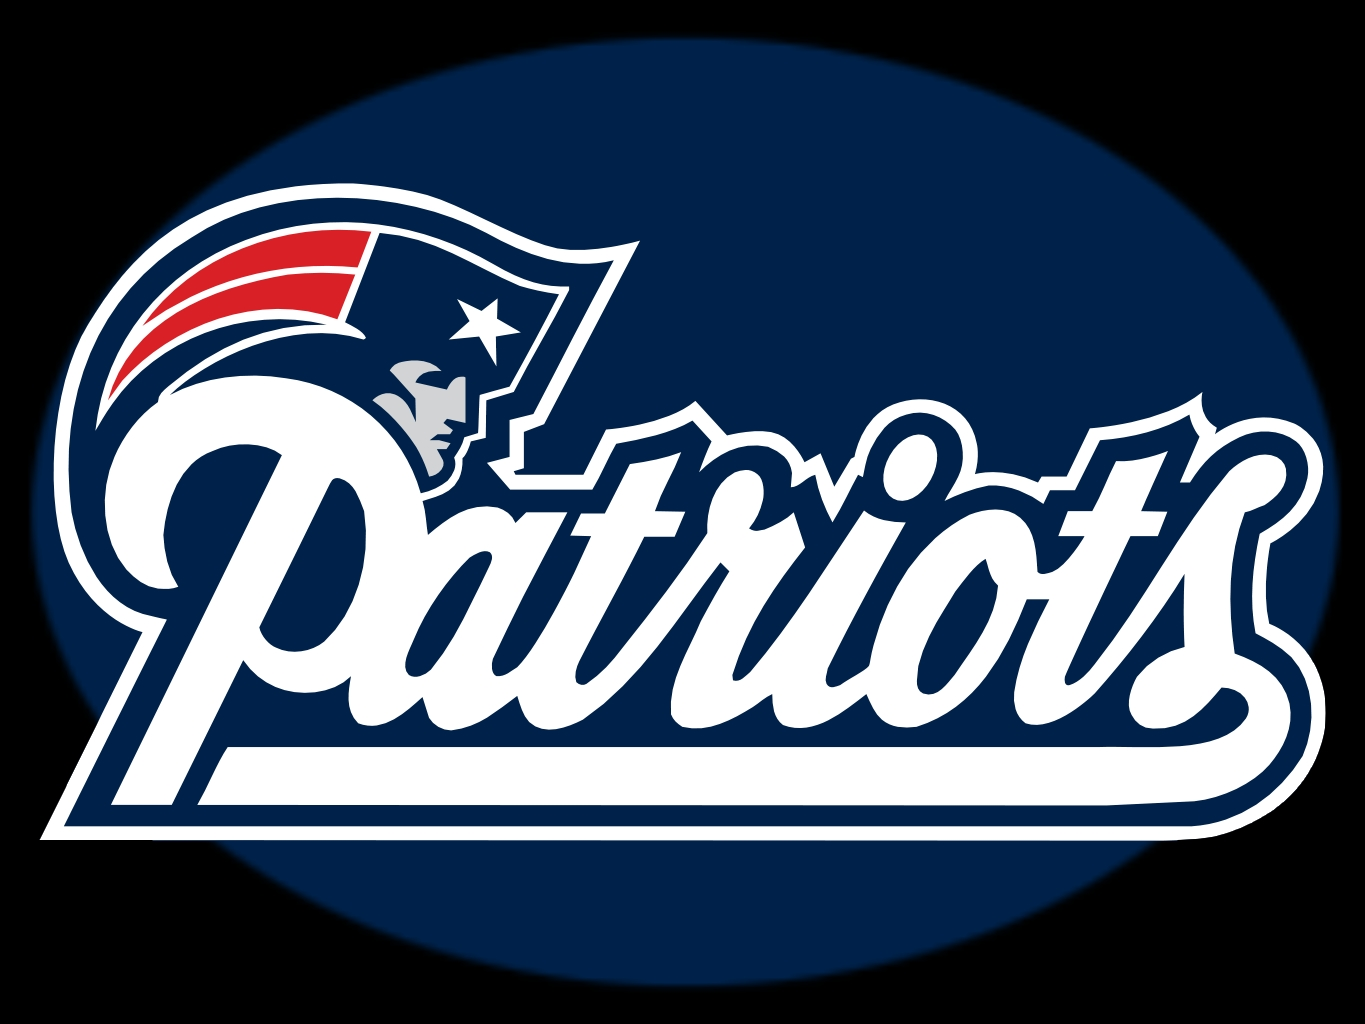 NFL Team Logos   Photo 248 of 416 phombocom 1365x1024